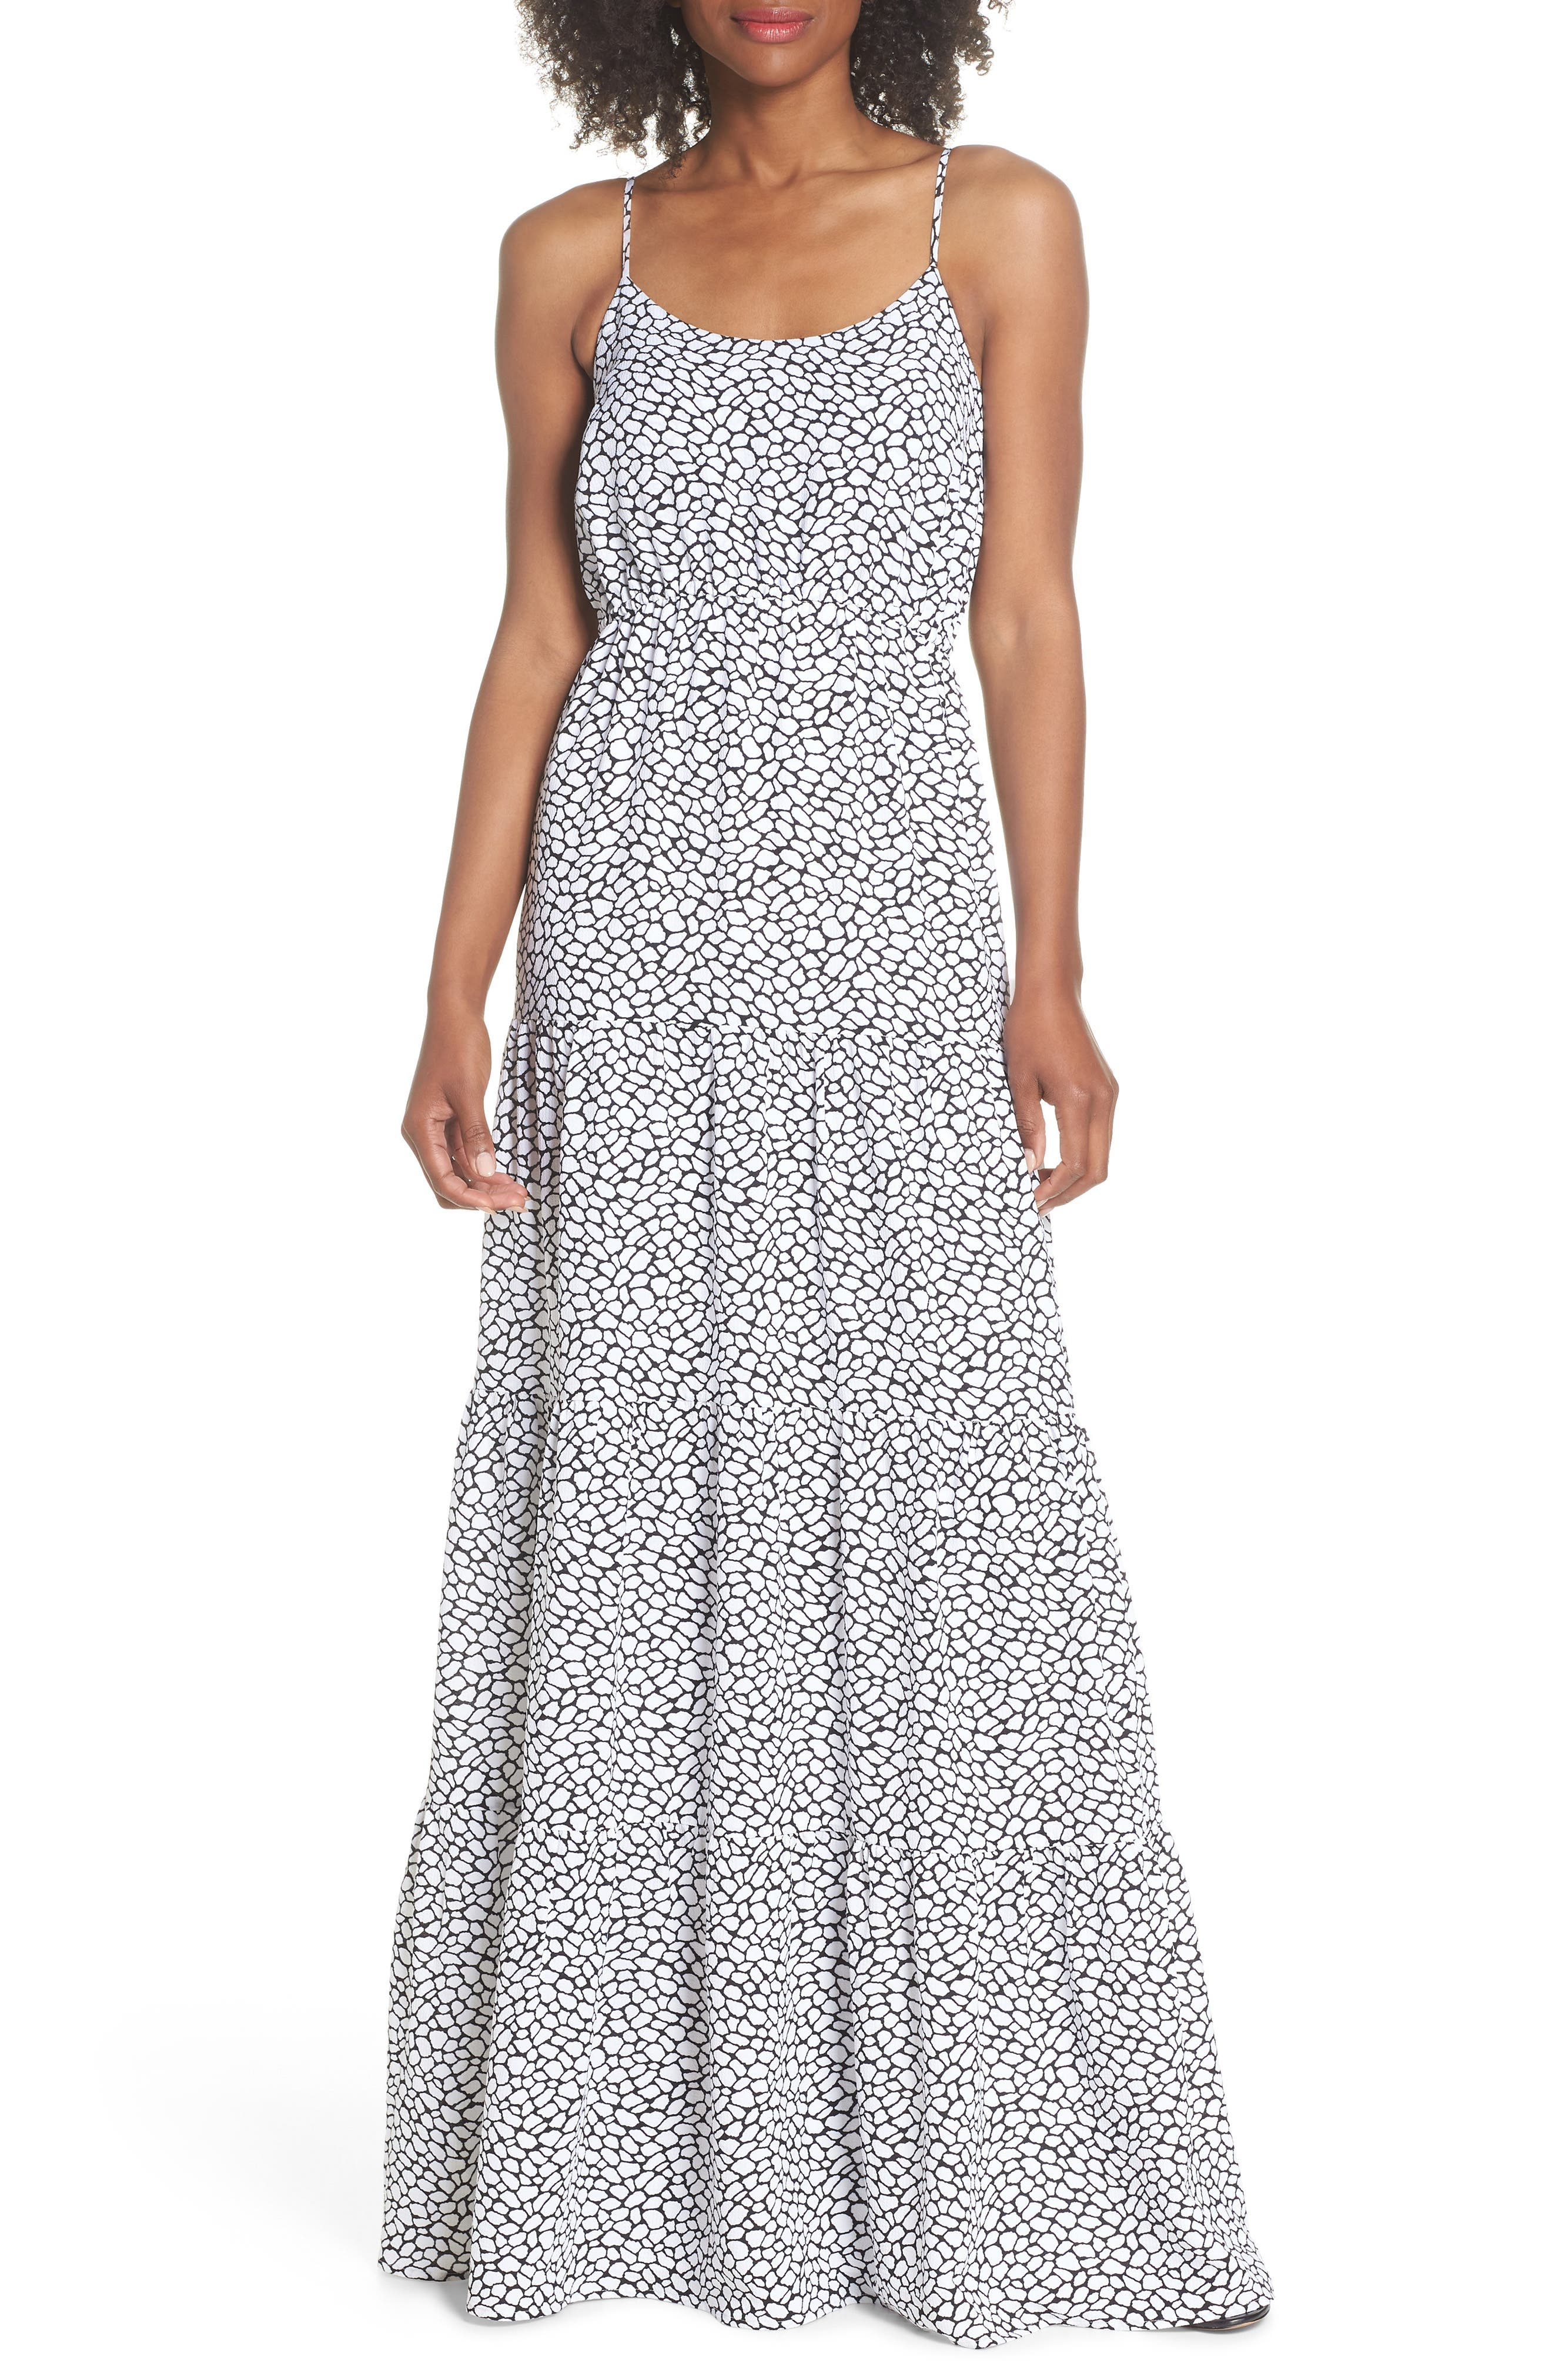 Tiered Maxi Dress,                         Main,                         color, White/ Black